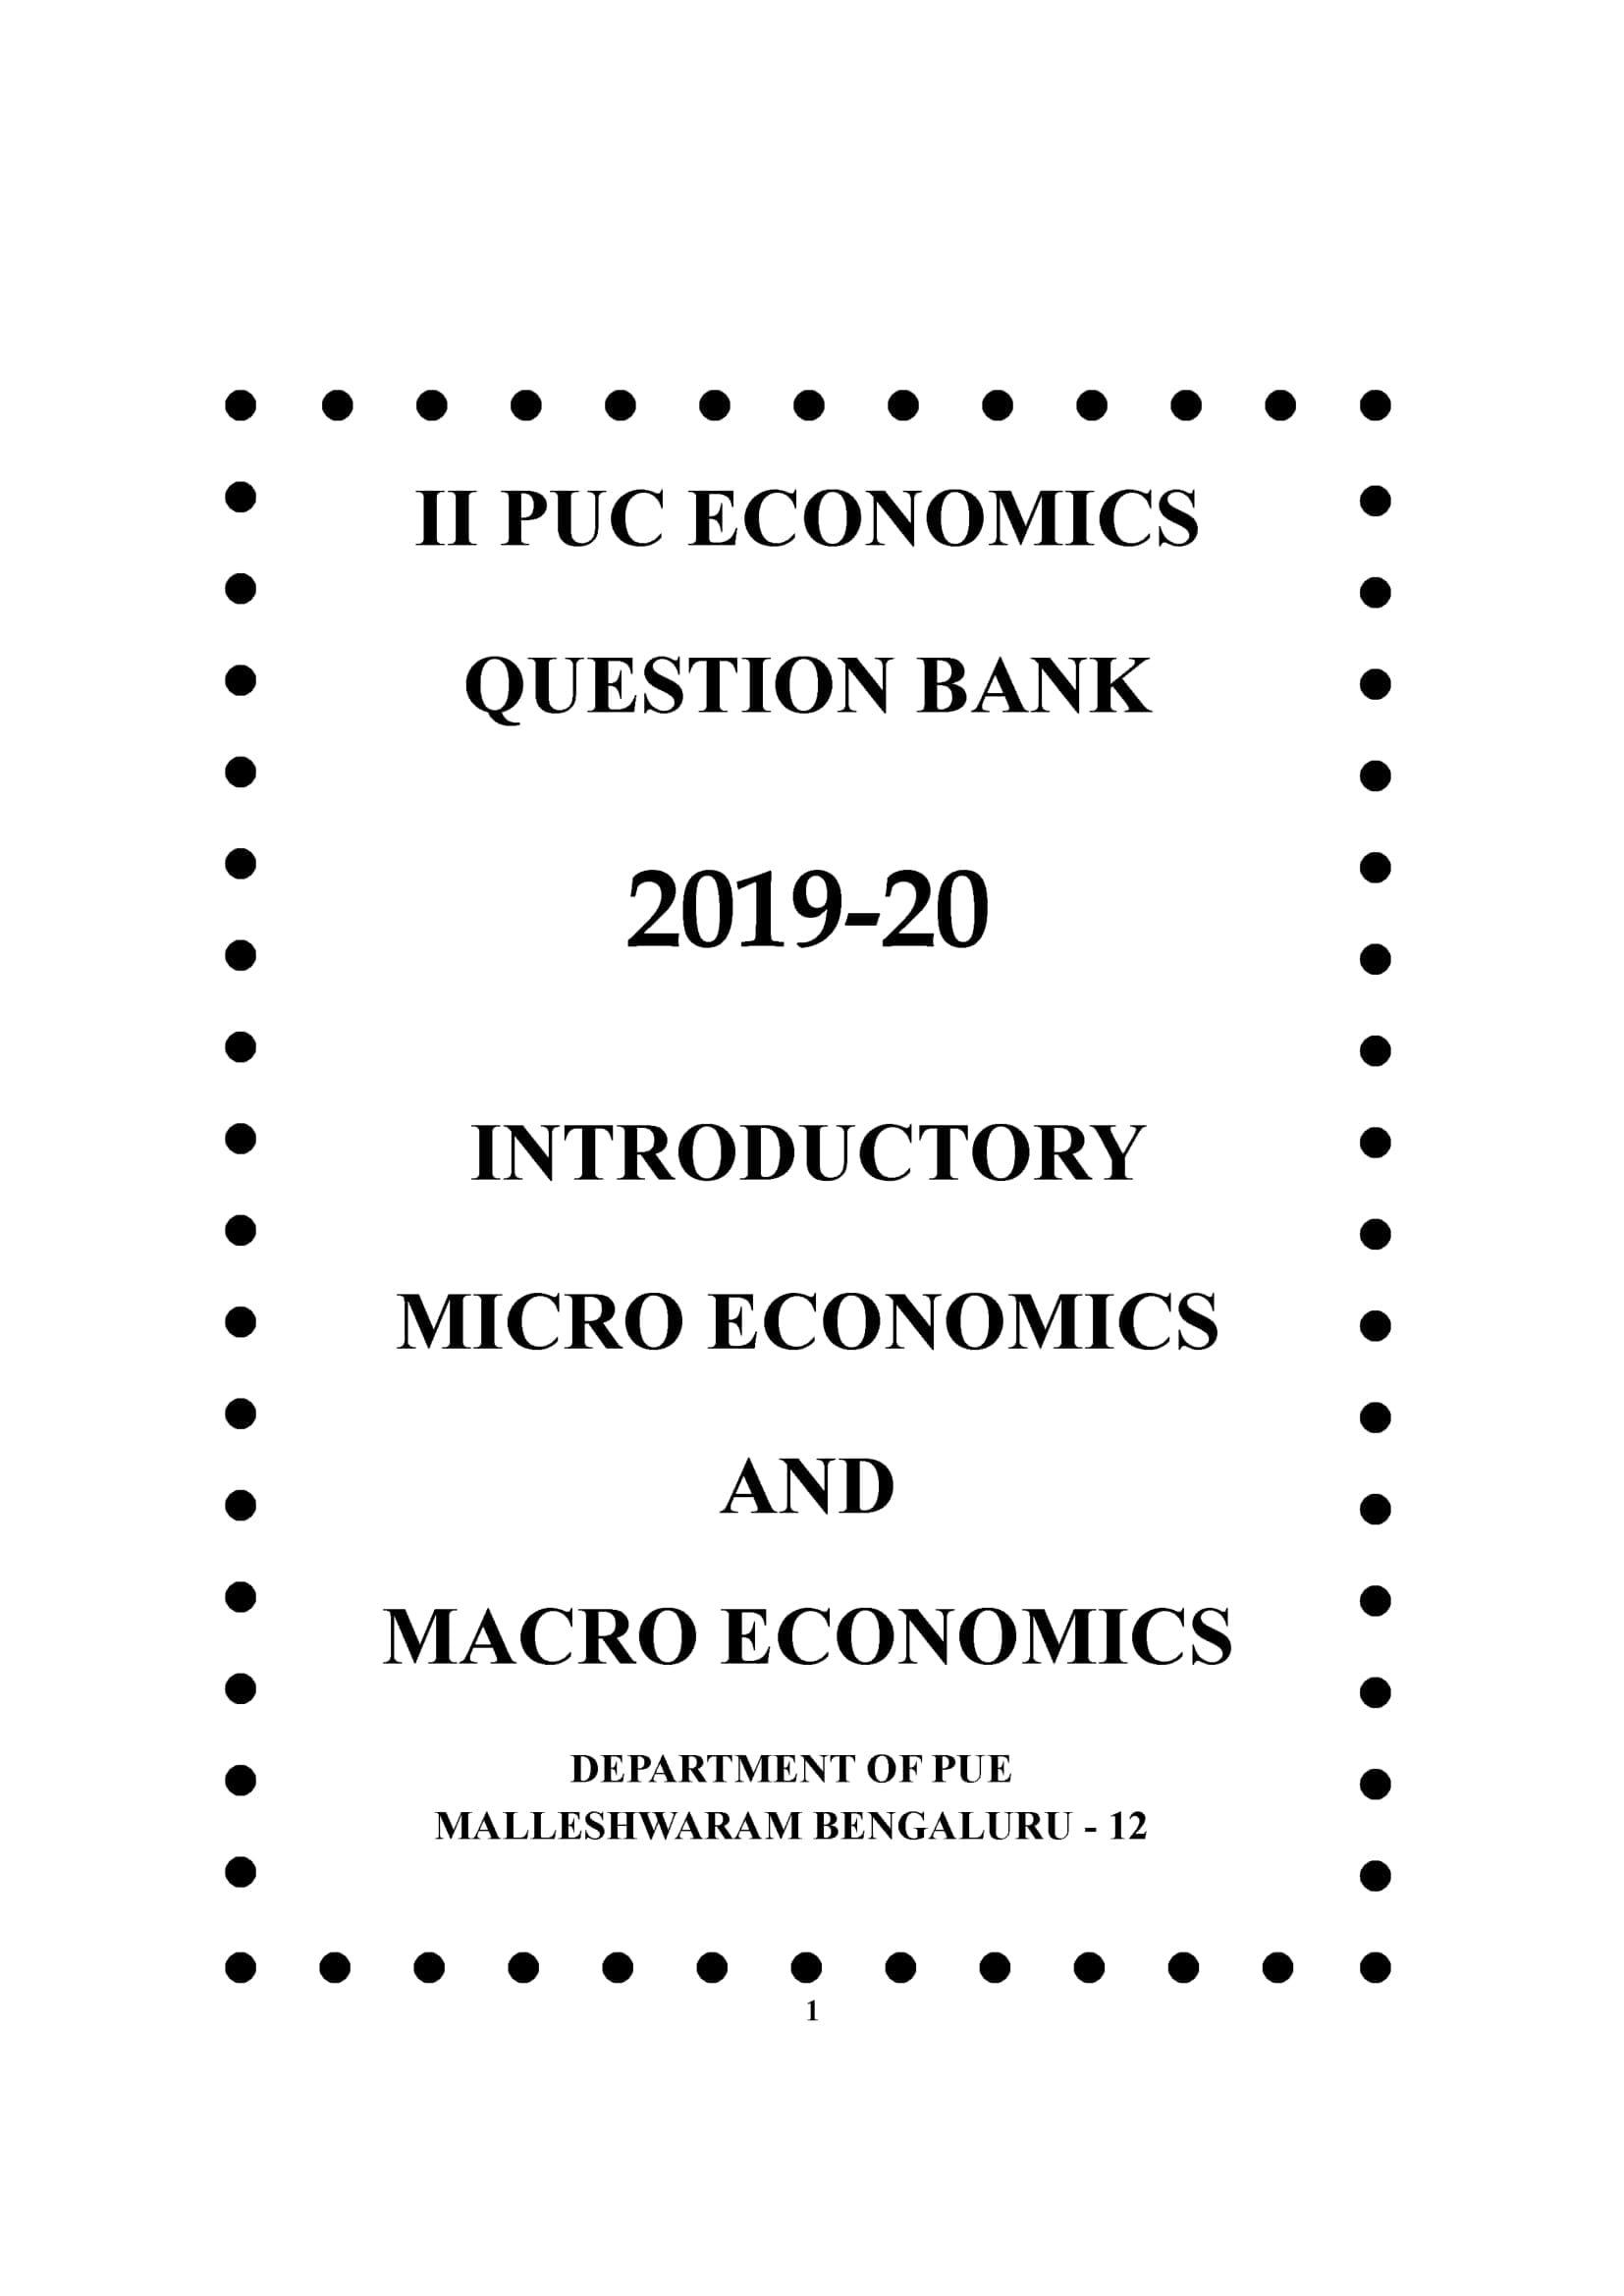 Karnataka 2nd PUC Question Bank for Economics